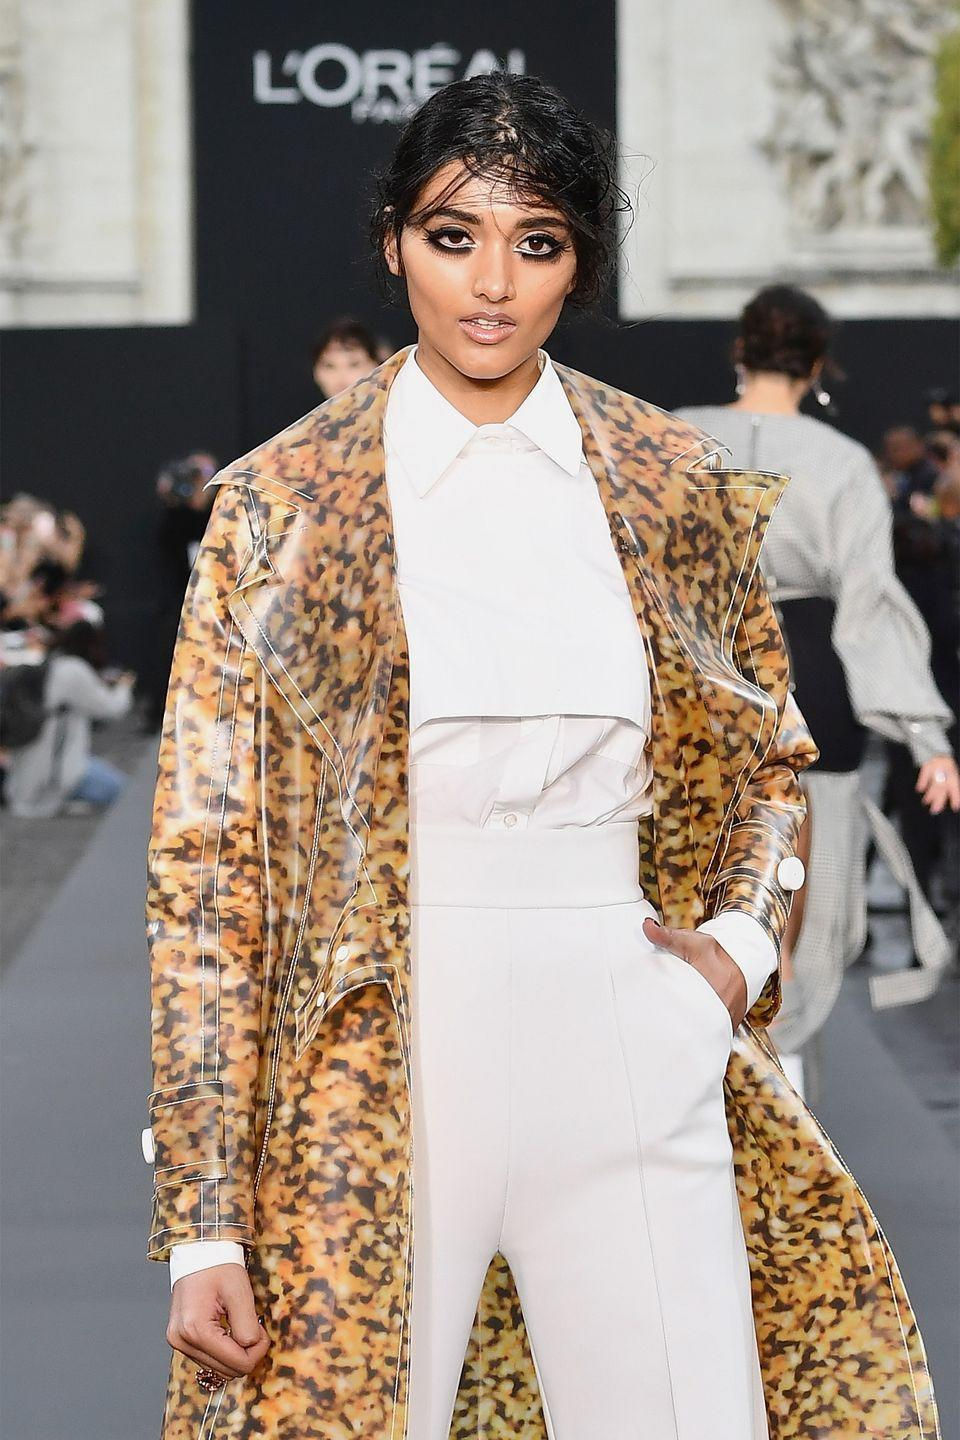 "<p>Although the London native was originally scouted for modeling when she still in high school, Gill officially broke through the industry when she landed a Burberry campaign at just 19 years old. It helped her popularity that this campaign was her first job ever, according to <a href=""https://www.elle.com/fashion/news/a26940/neelam-gill-interview/"" rel=""nofollow noopener"" target=""_blank"" data-ylk=""slk:ELLE"" class=""link rapid-noclick-resp""><em>ELLE</em></a>, and that she became the first Indian model to pose for the fashion house's ads.</p>"